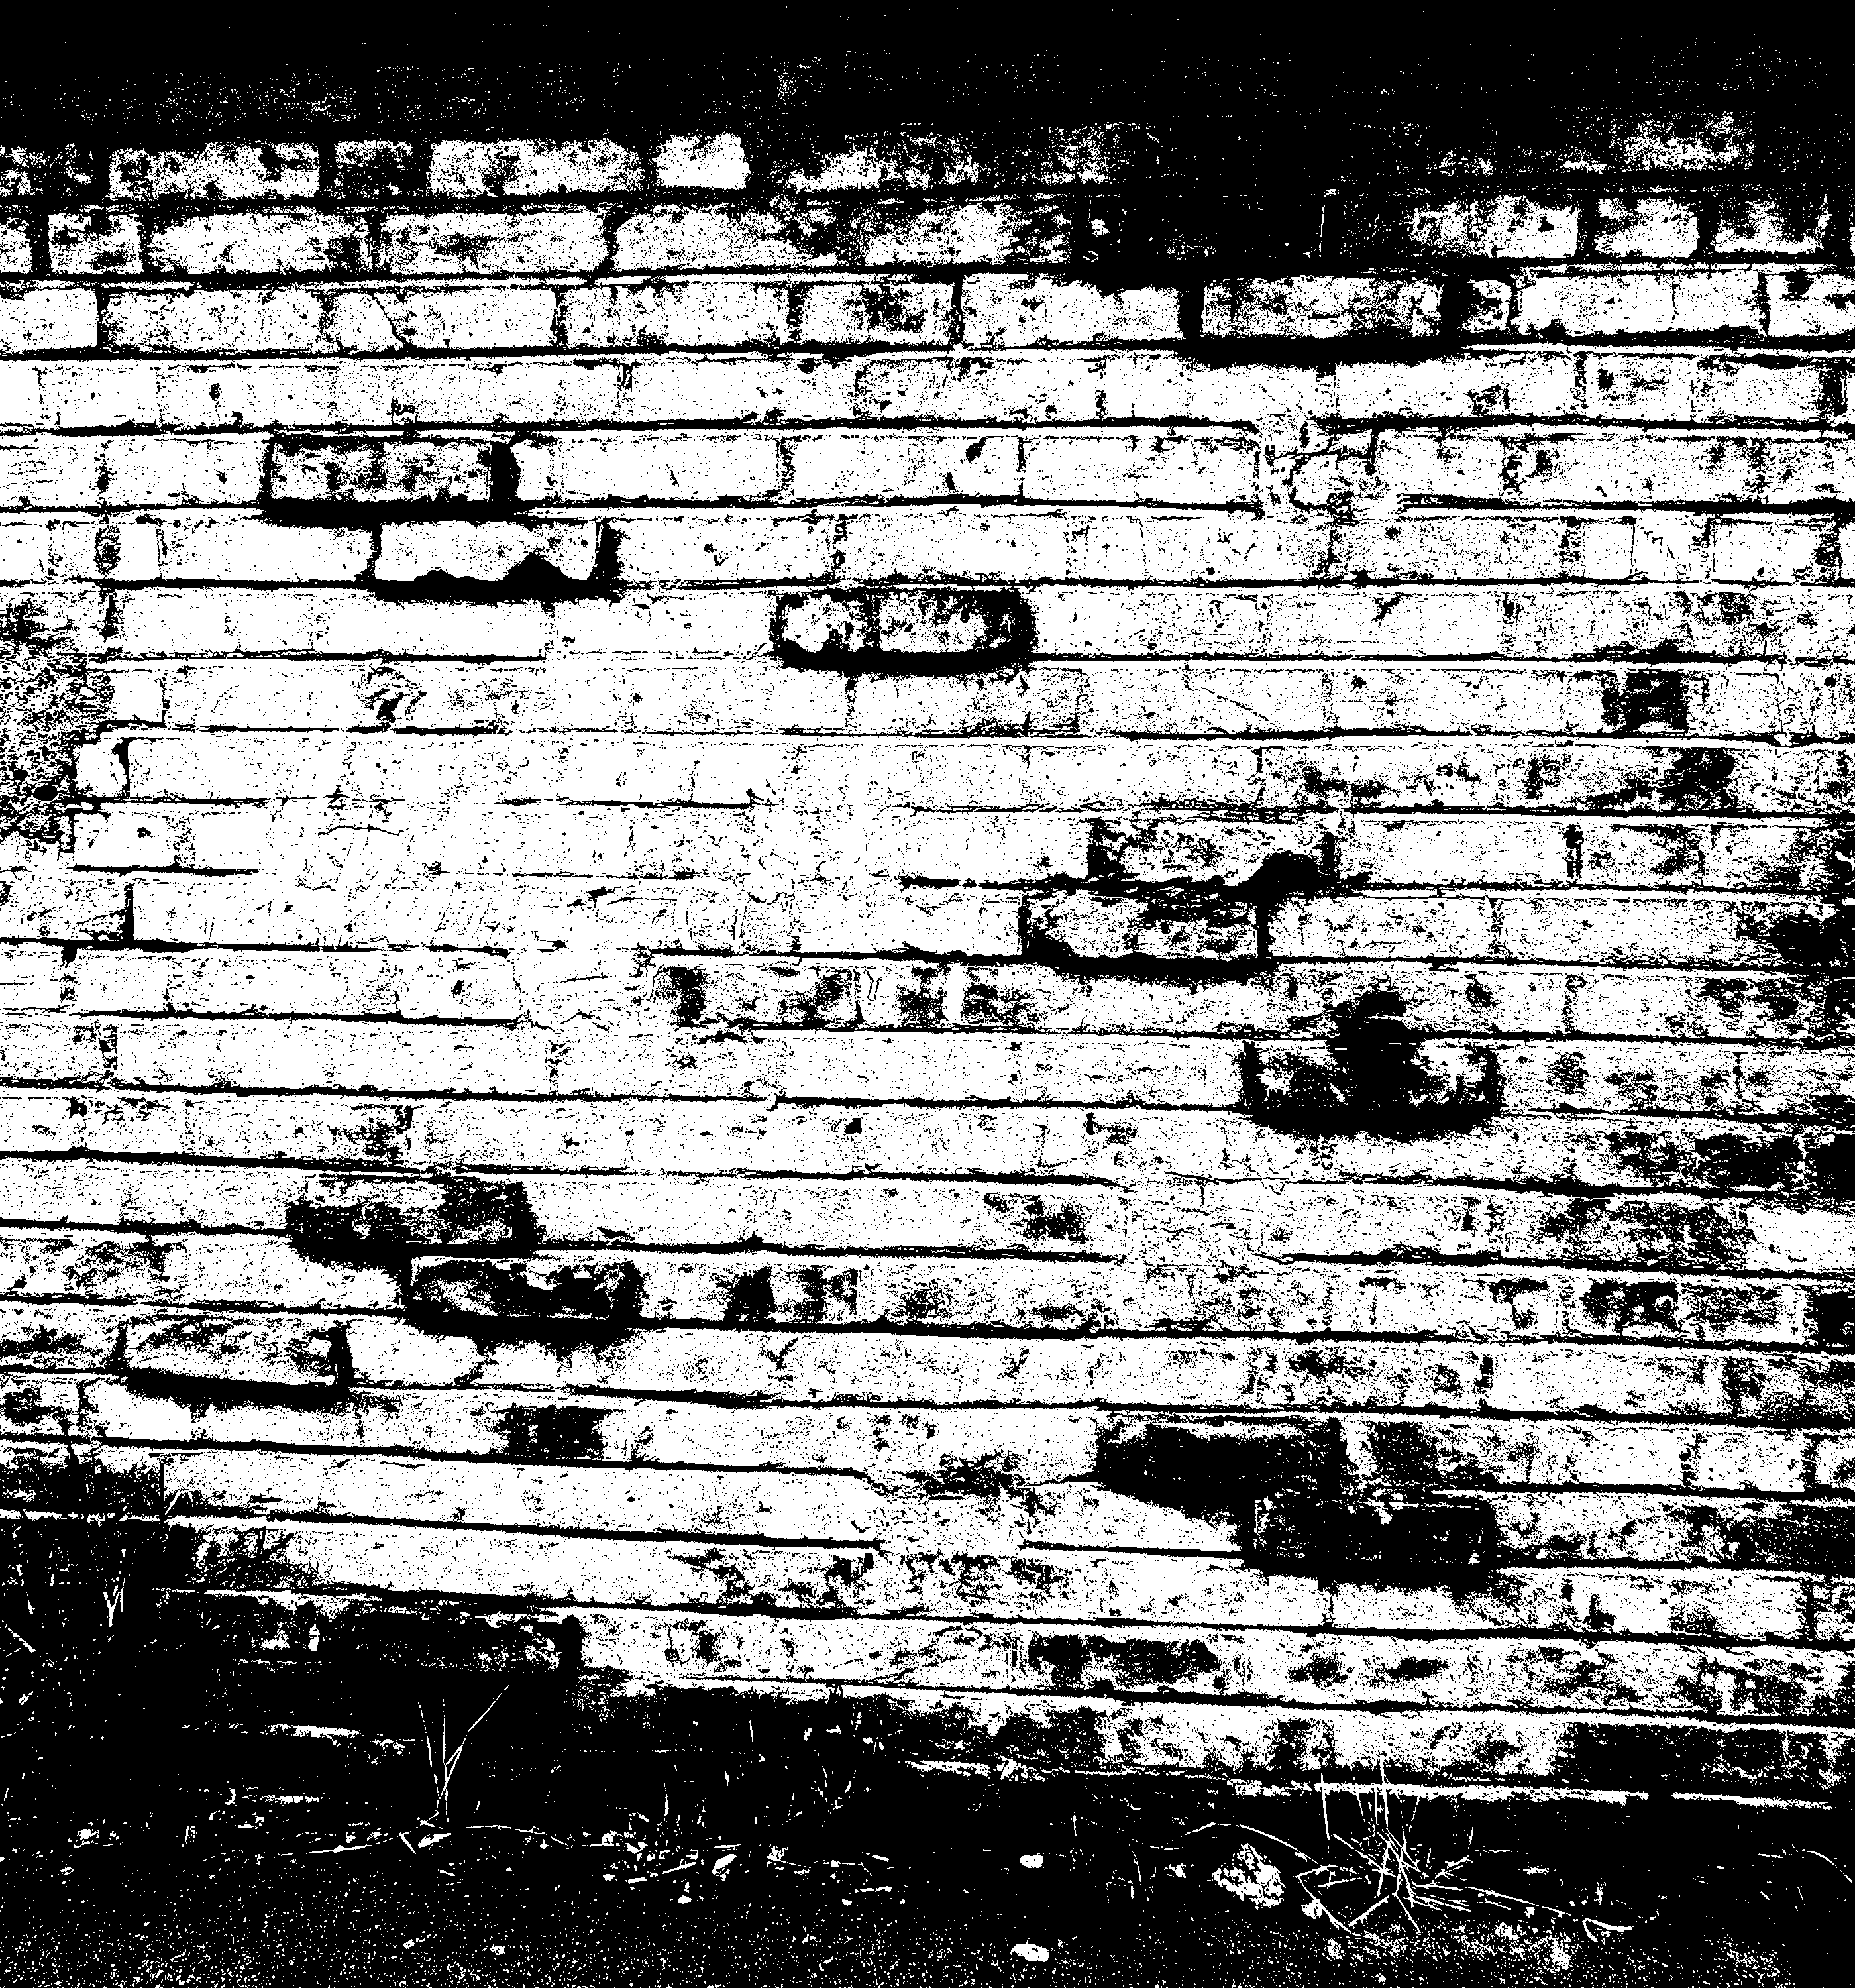 Brick Wall in Black and White Textures (PNG)